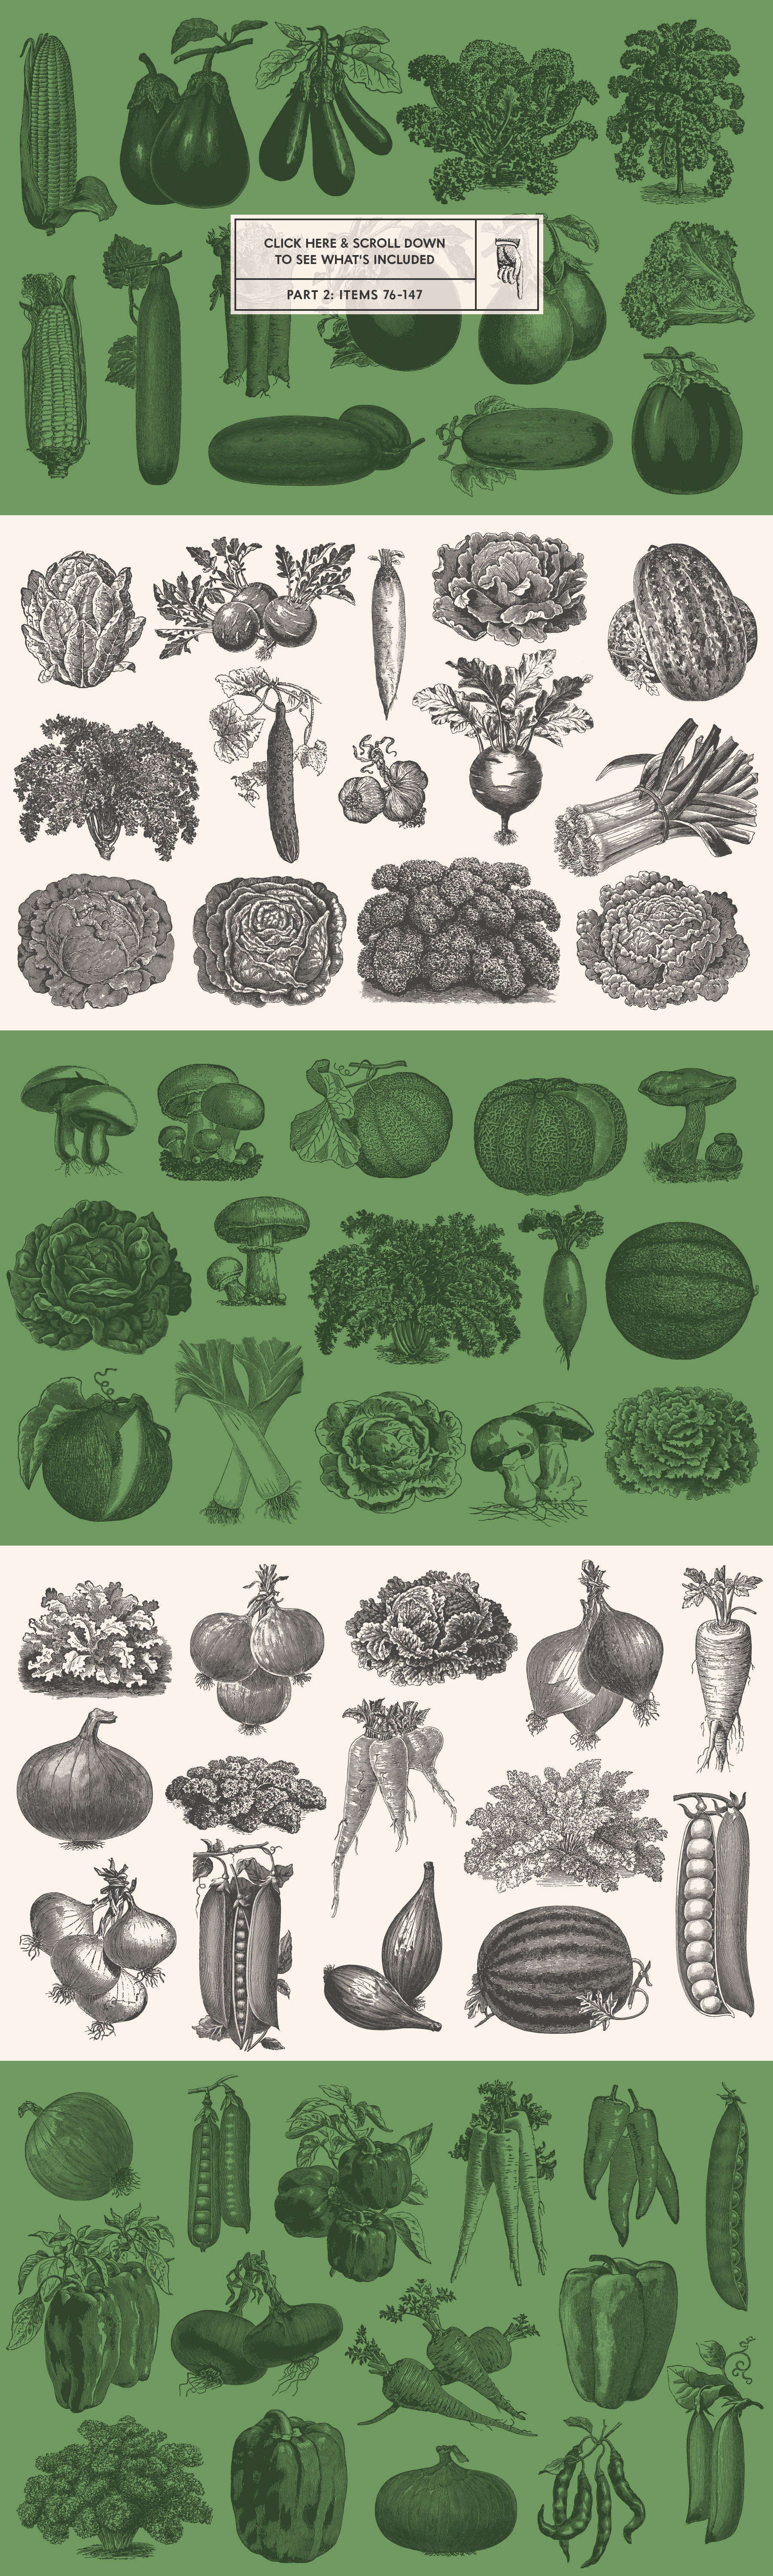 220 Vintage Vegetable Illustrations by Graphic Goods – all items preview 02